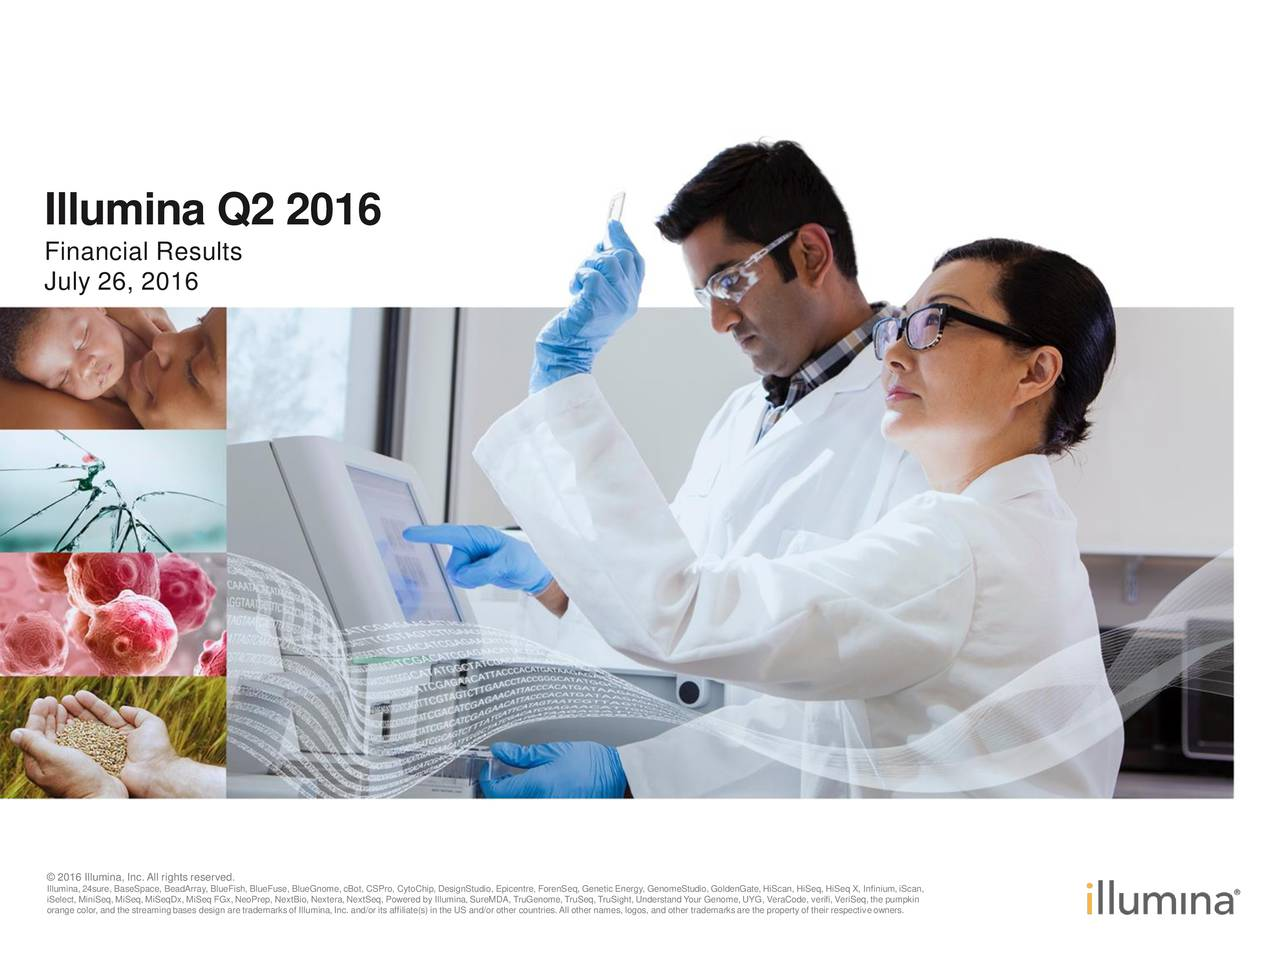 Financial Results July 26, 2016 Illumina,24sure, BaseSpace, BeadArray, BlueFish, BlueFuse, BlueGnome,cBot, CSPro, CytoChip, DesignStudio, Epicentre, ForenSeq, Genetic Energy, GenomeStudio,GoldenGate,HiScan, HiSeq, HiSeq X, Infinium,iScan, iSelect, MiniSeq, MiSeq, MiSeqDx, MiSeq FGx,NeoPrep, NextBio, Nextera,NextSeq, Powered by Illumina,SureMDA, TruGenome,TruSeq, TruSight, Understand Your Genome,UYG, VeraCode, verifi,VeriSeq, the pumpkin orange color, and the streamingbases design are trademarksof Illumina,Inc. and/or its affiliate(s) in the US and/or other countries.All other names, logos, and other trademarksare the property of their respectiveowners.